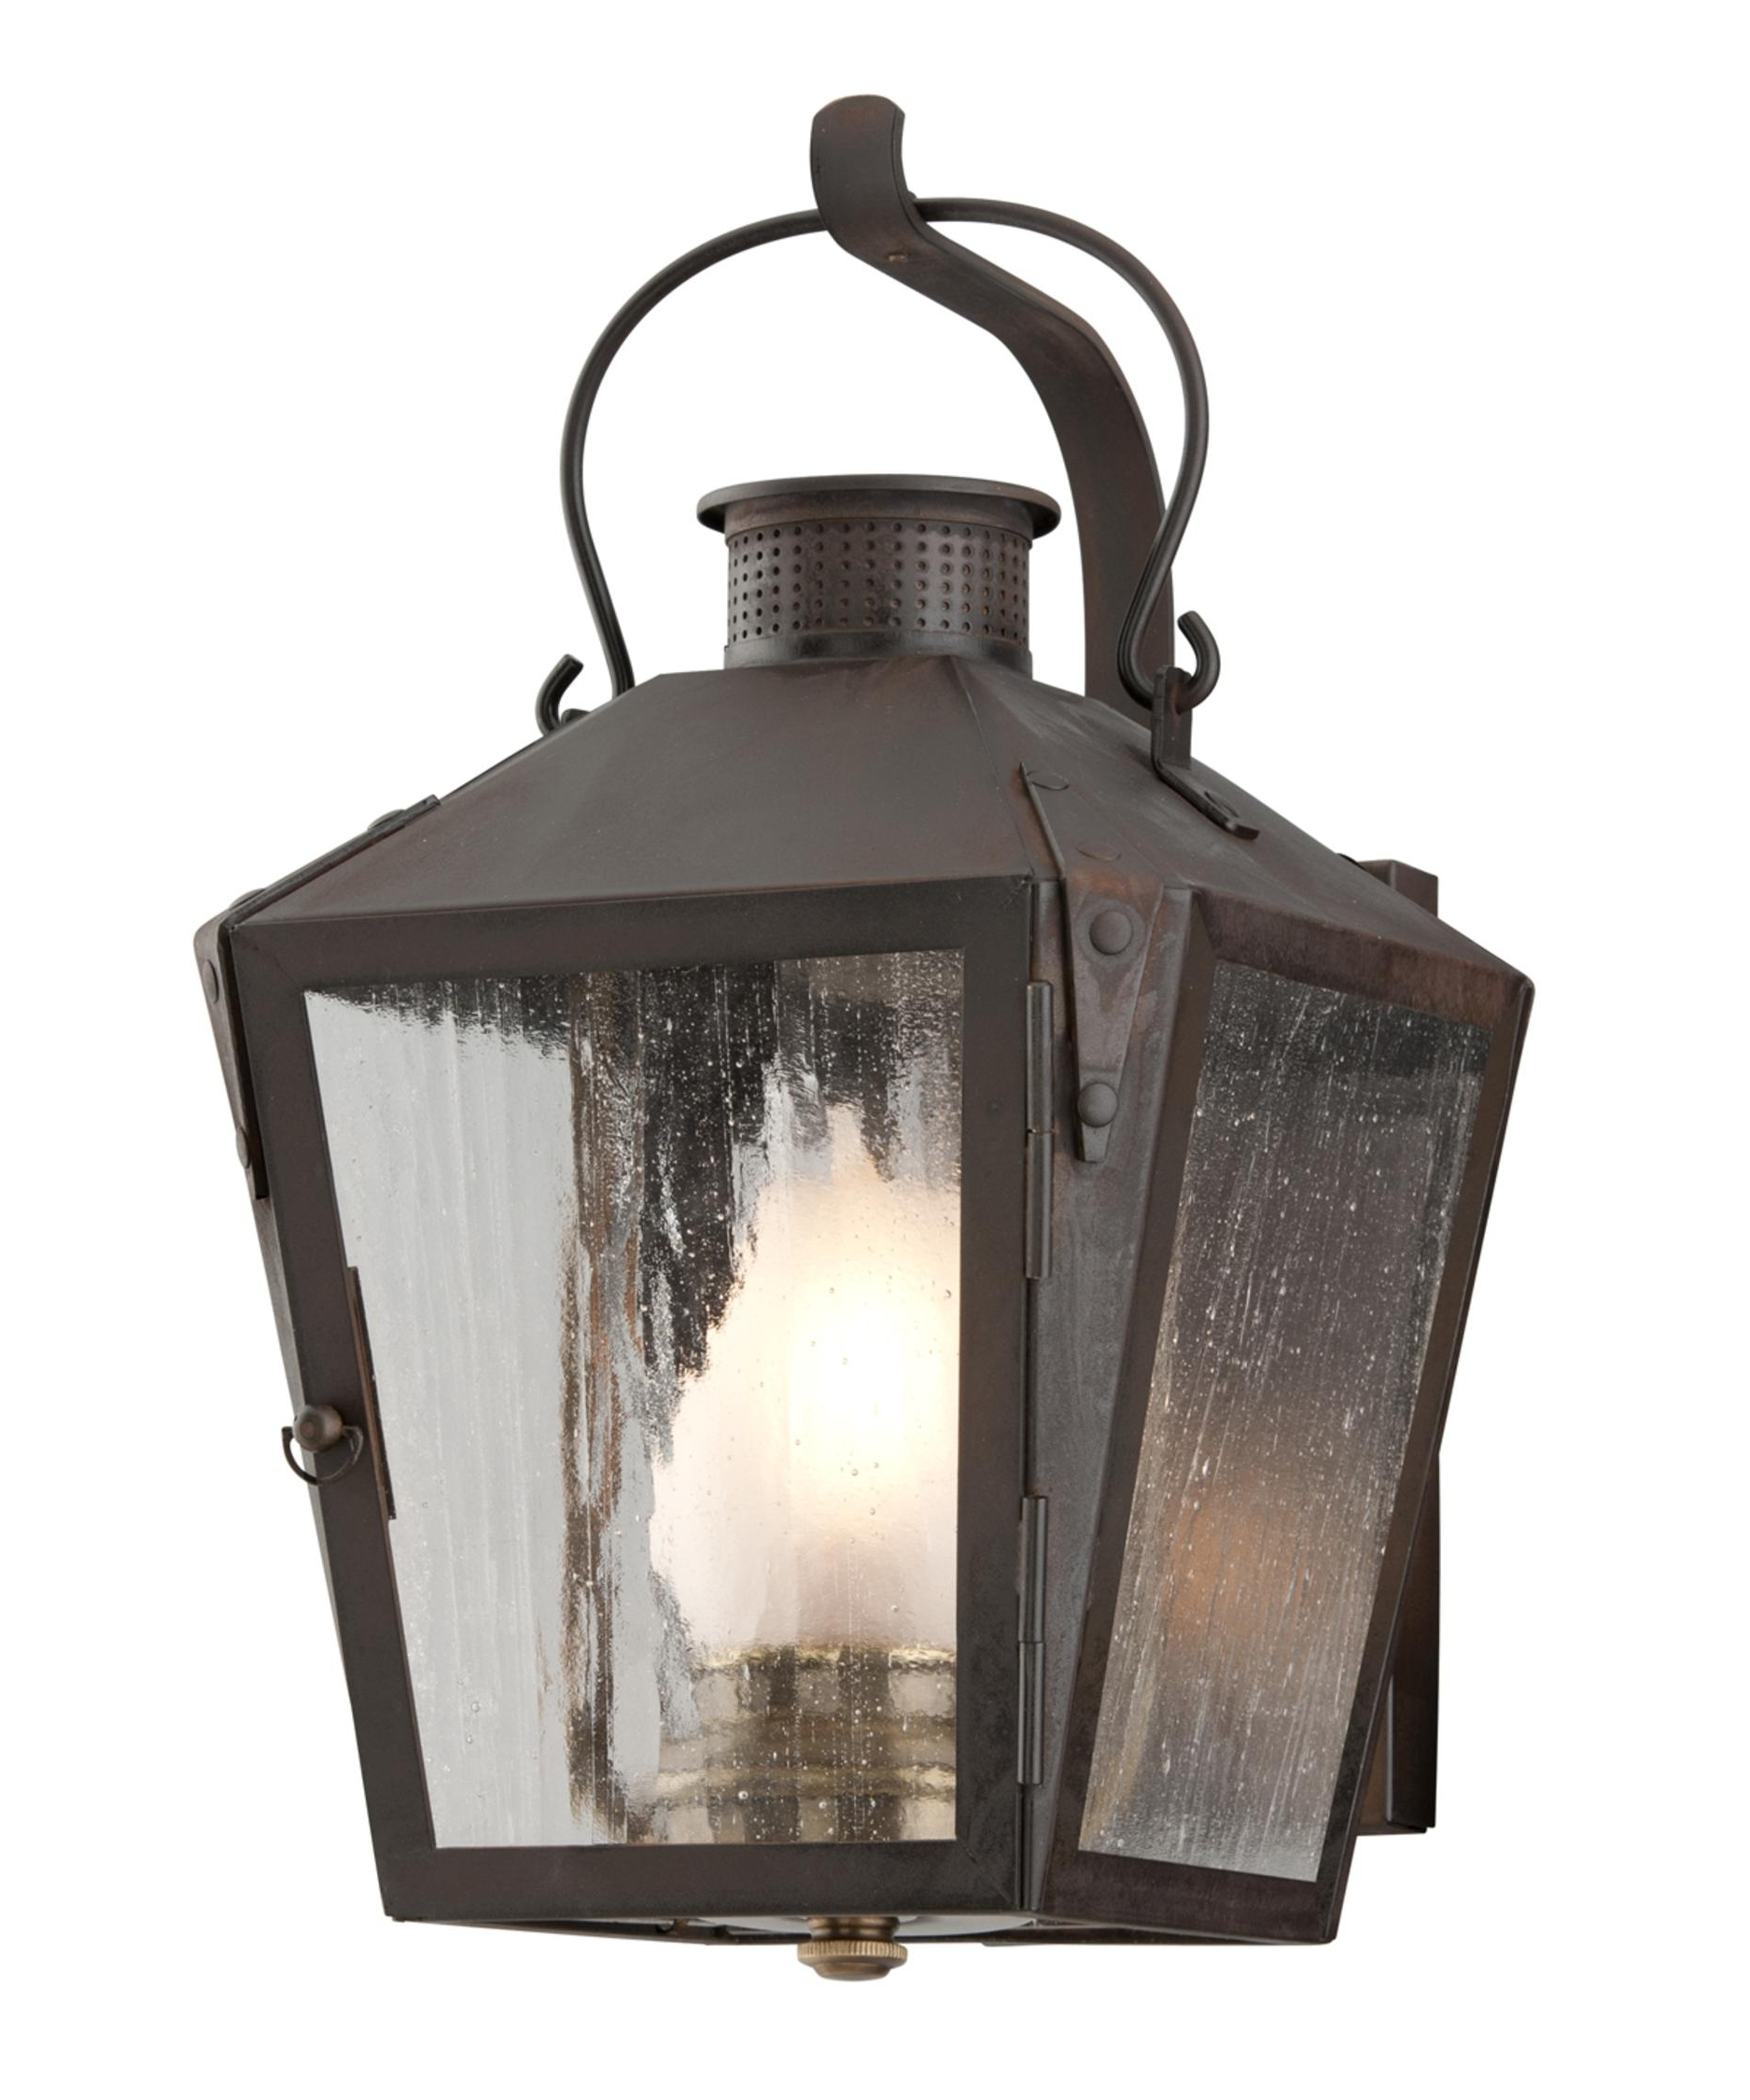 Nantucket Outdoor Lanterns Intended For Trendy Troy Lighting B3761 Nantucket 8 Inch Wide 1 Light Outdoor Wall Light (Gallery 2 of 20)